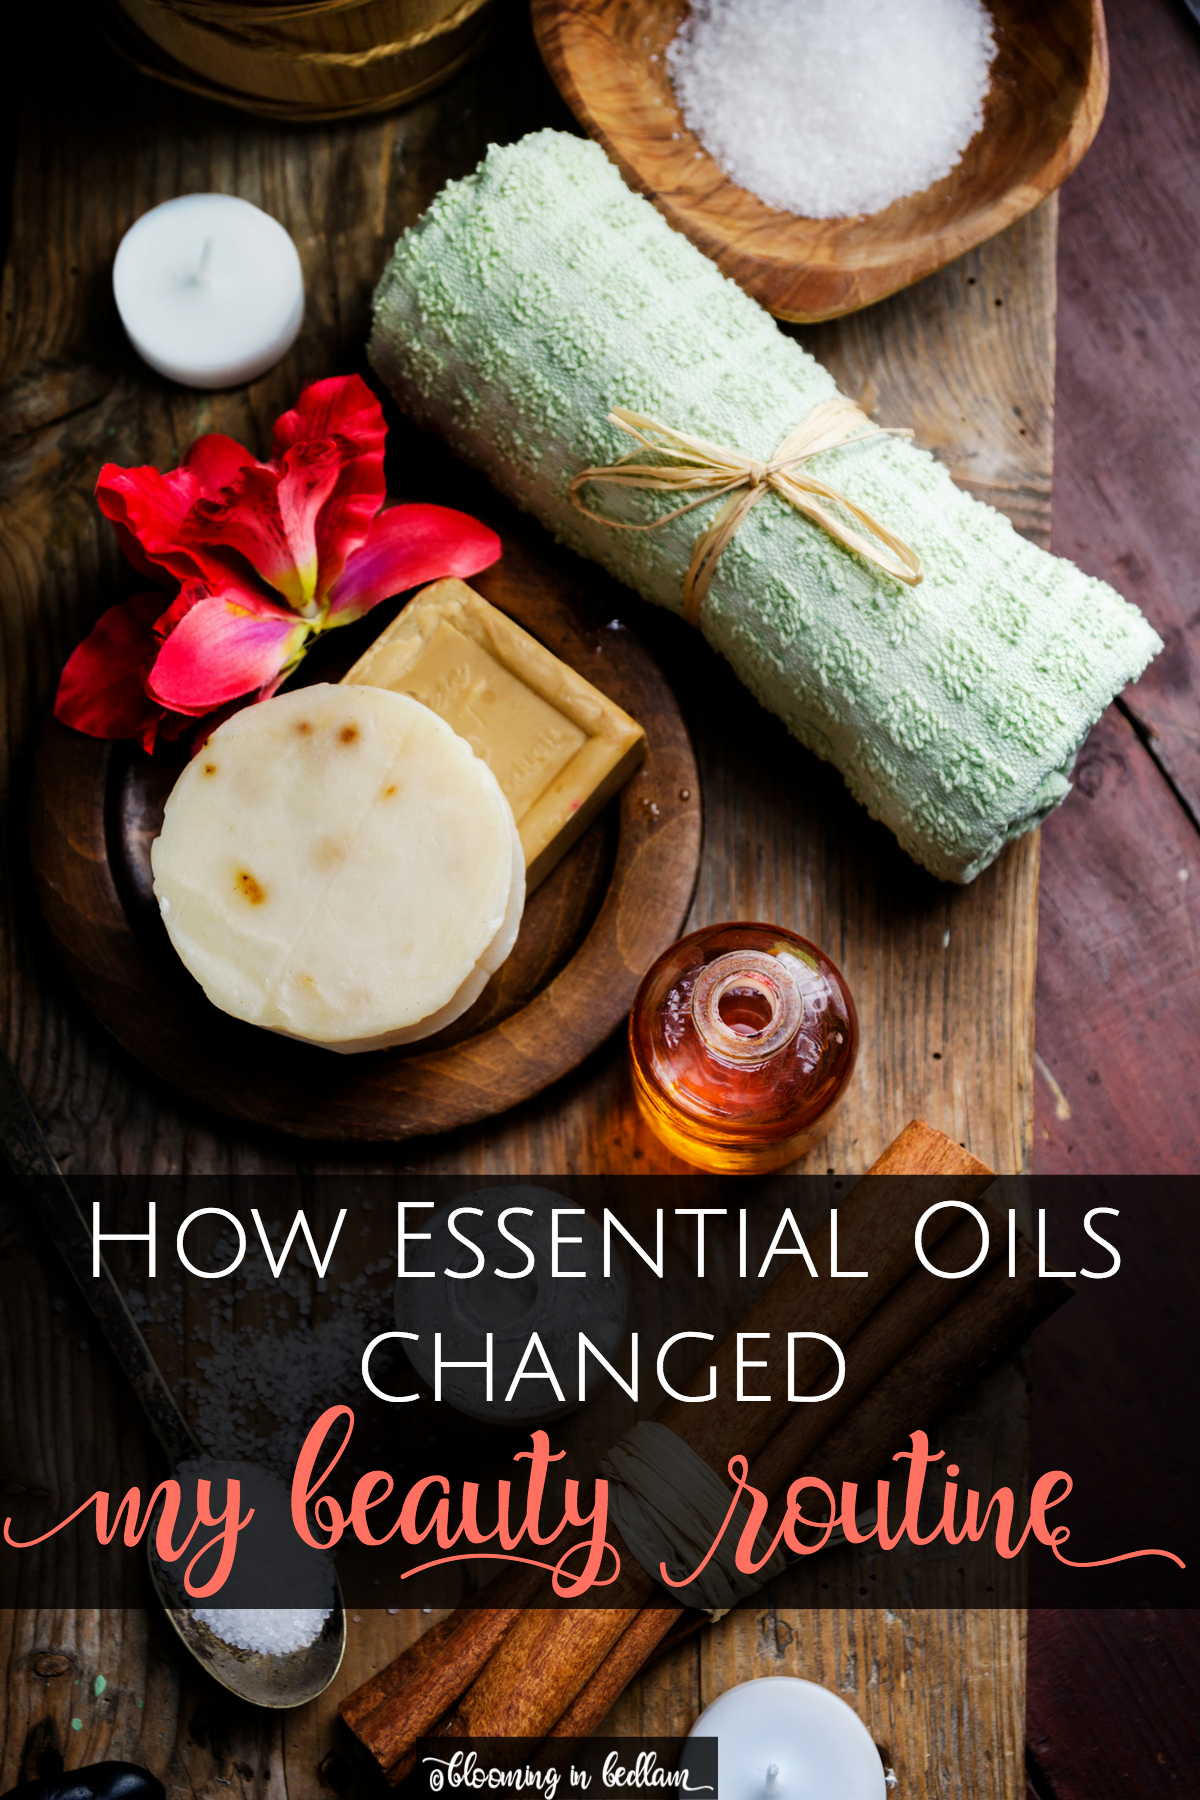 I love incorporating Essential Oils in to my natural diy skin care routine. How Essential Oils Changed My Beauty Routine + Must-Have Oils for sleeping better, longer lashes, battling dark spots and acne scars & preventing wrinkles. Green beauty is a lifestyle choice of choosing skincare and makeup without toxic chemicals that I am embracing for a healthier and longer life.